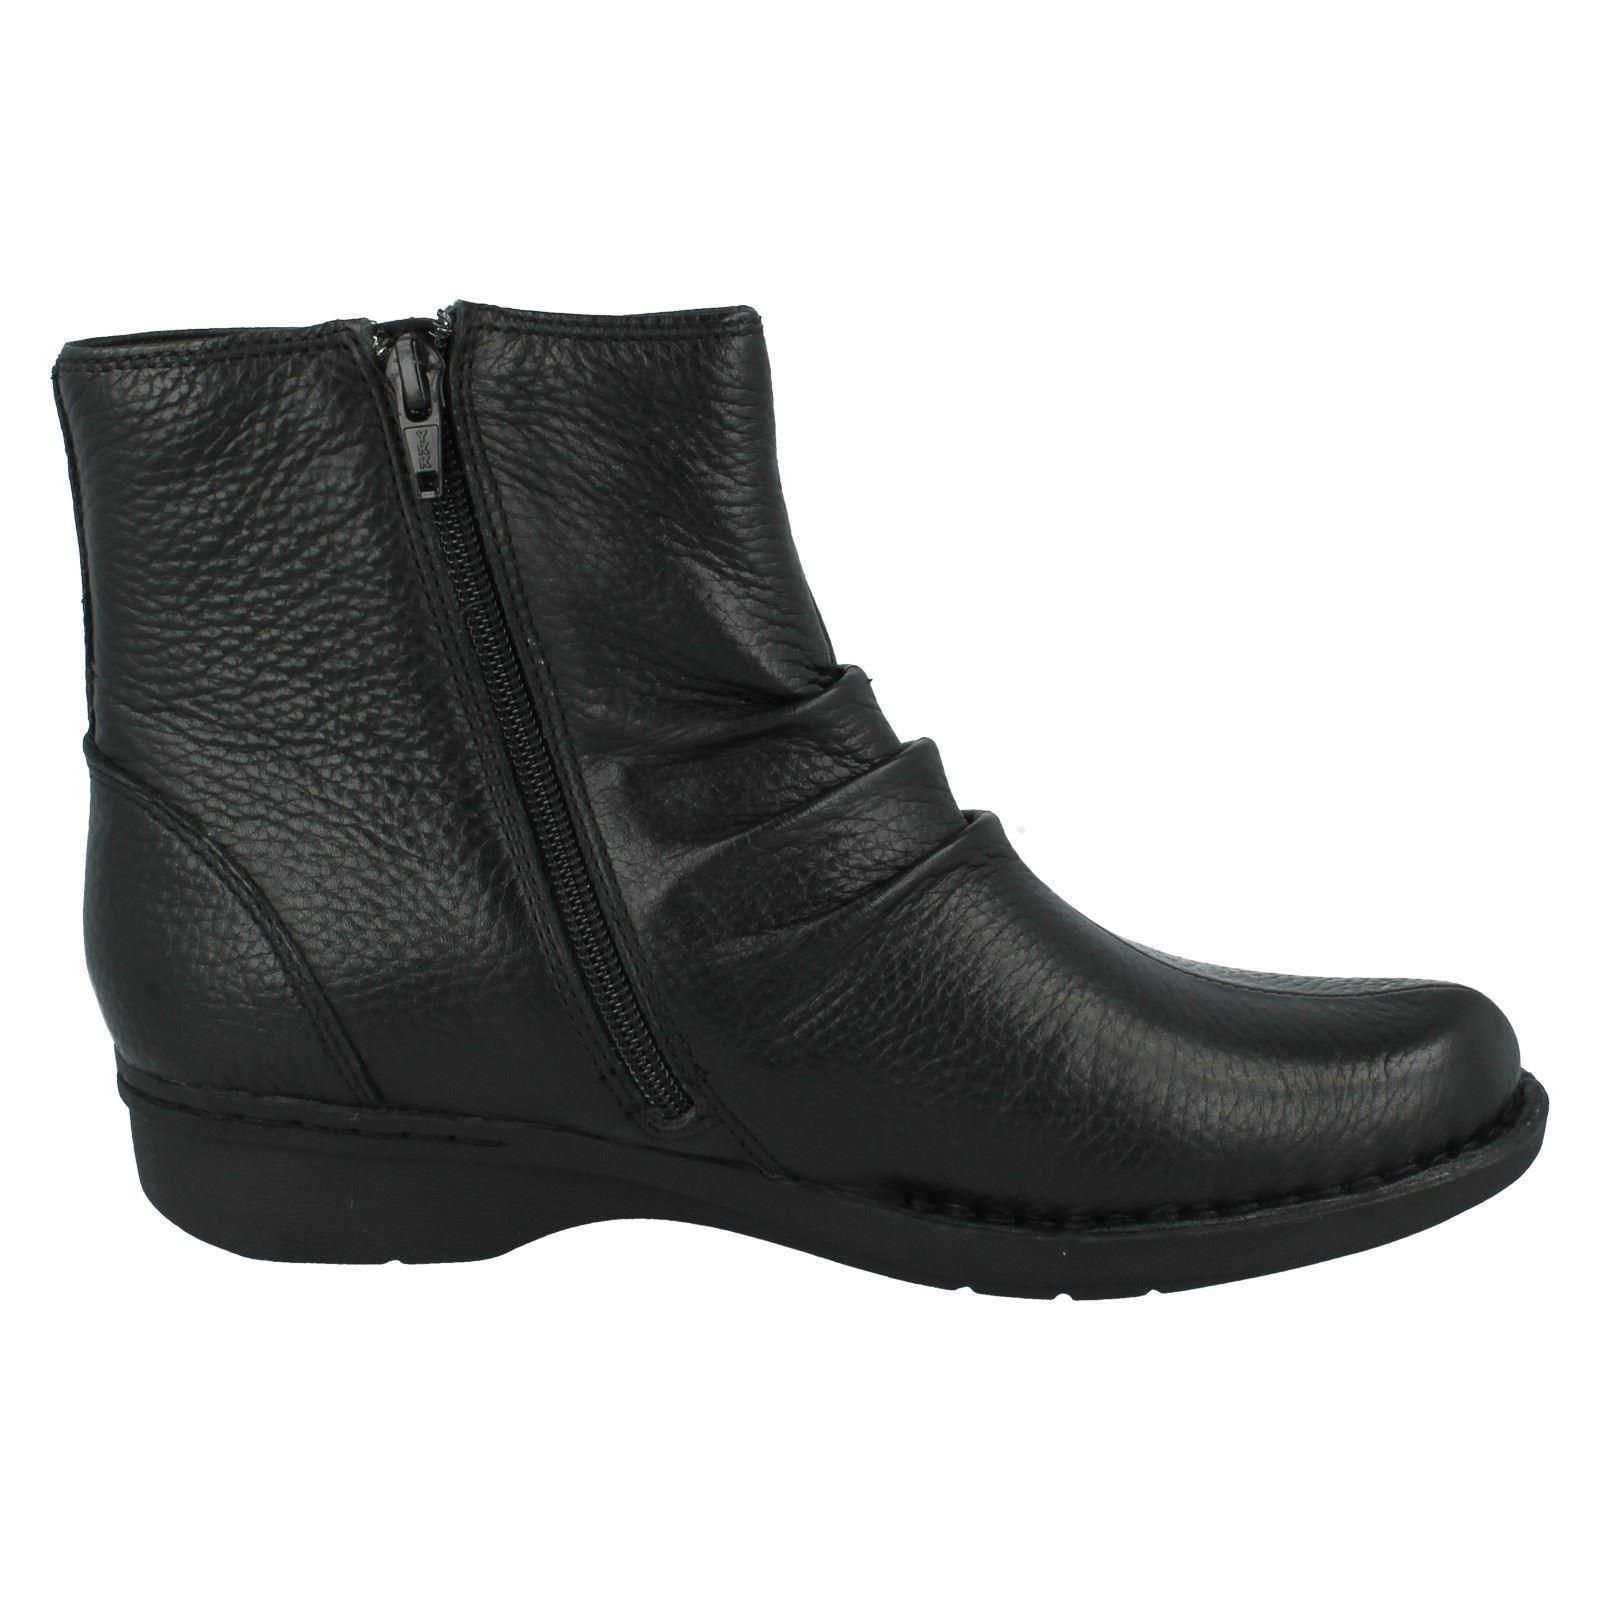 Ladies Clarks Ankle Boots *Money Whistle*